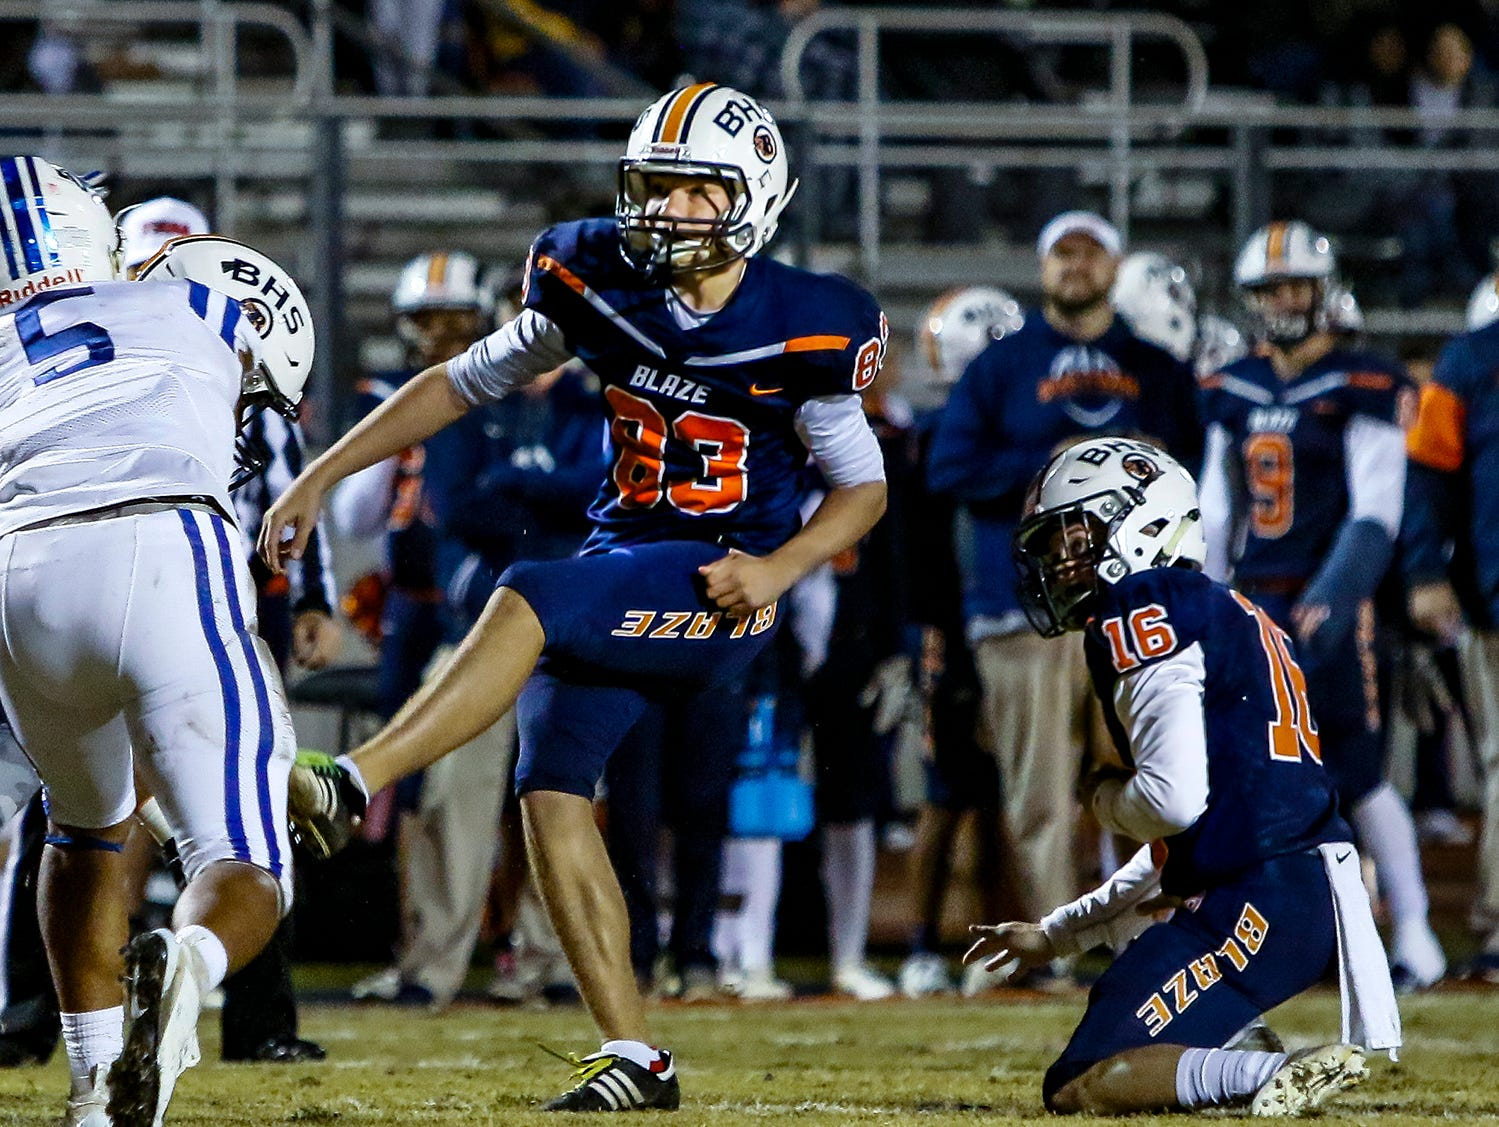 Blackman kicker Jackson Satterfield and holder Alex Garrott watch as the football splits the uprights for Blackman's second score of the night.